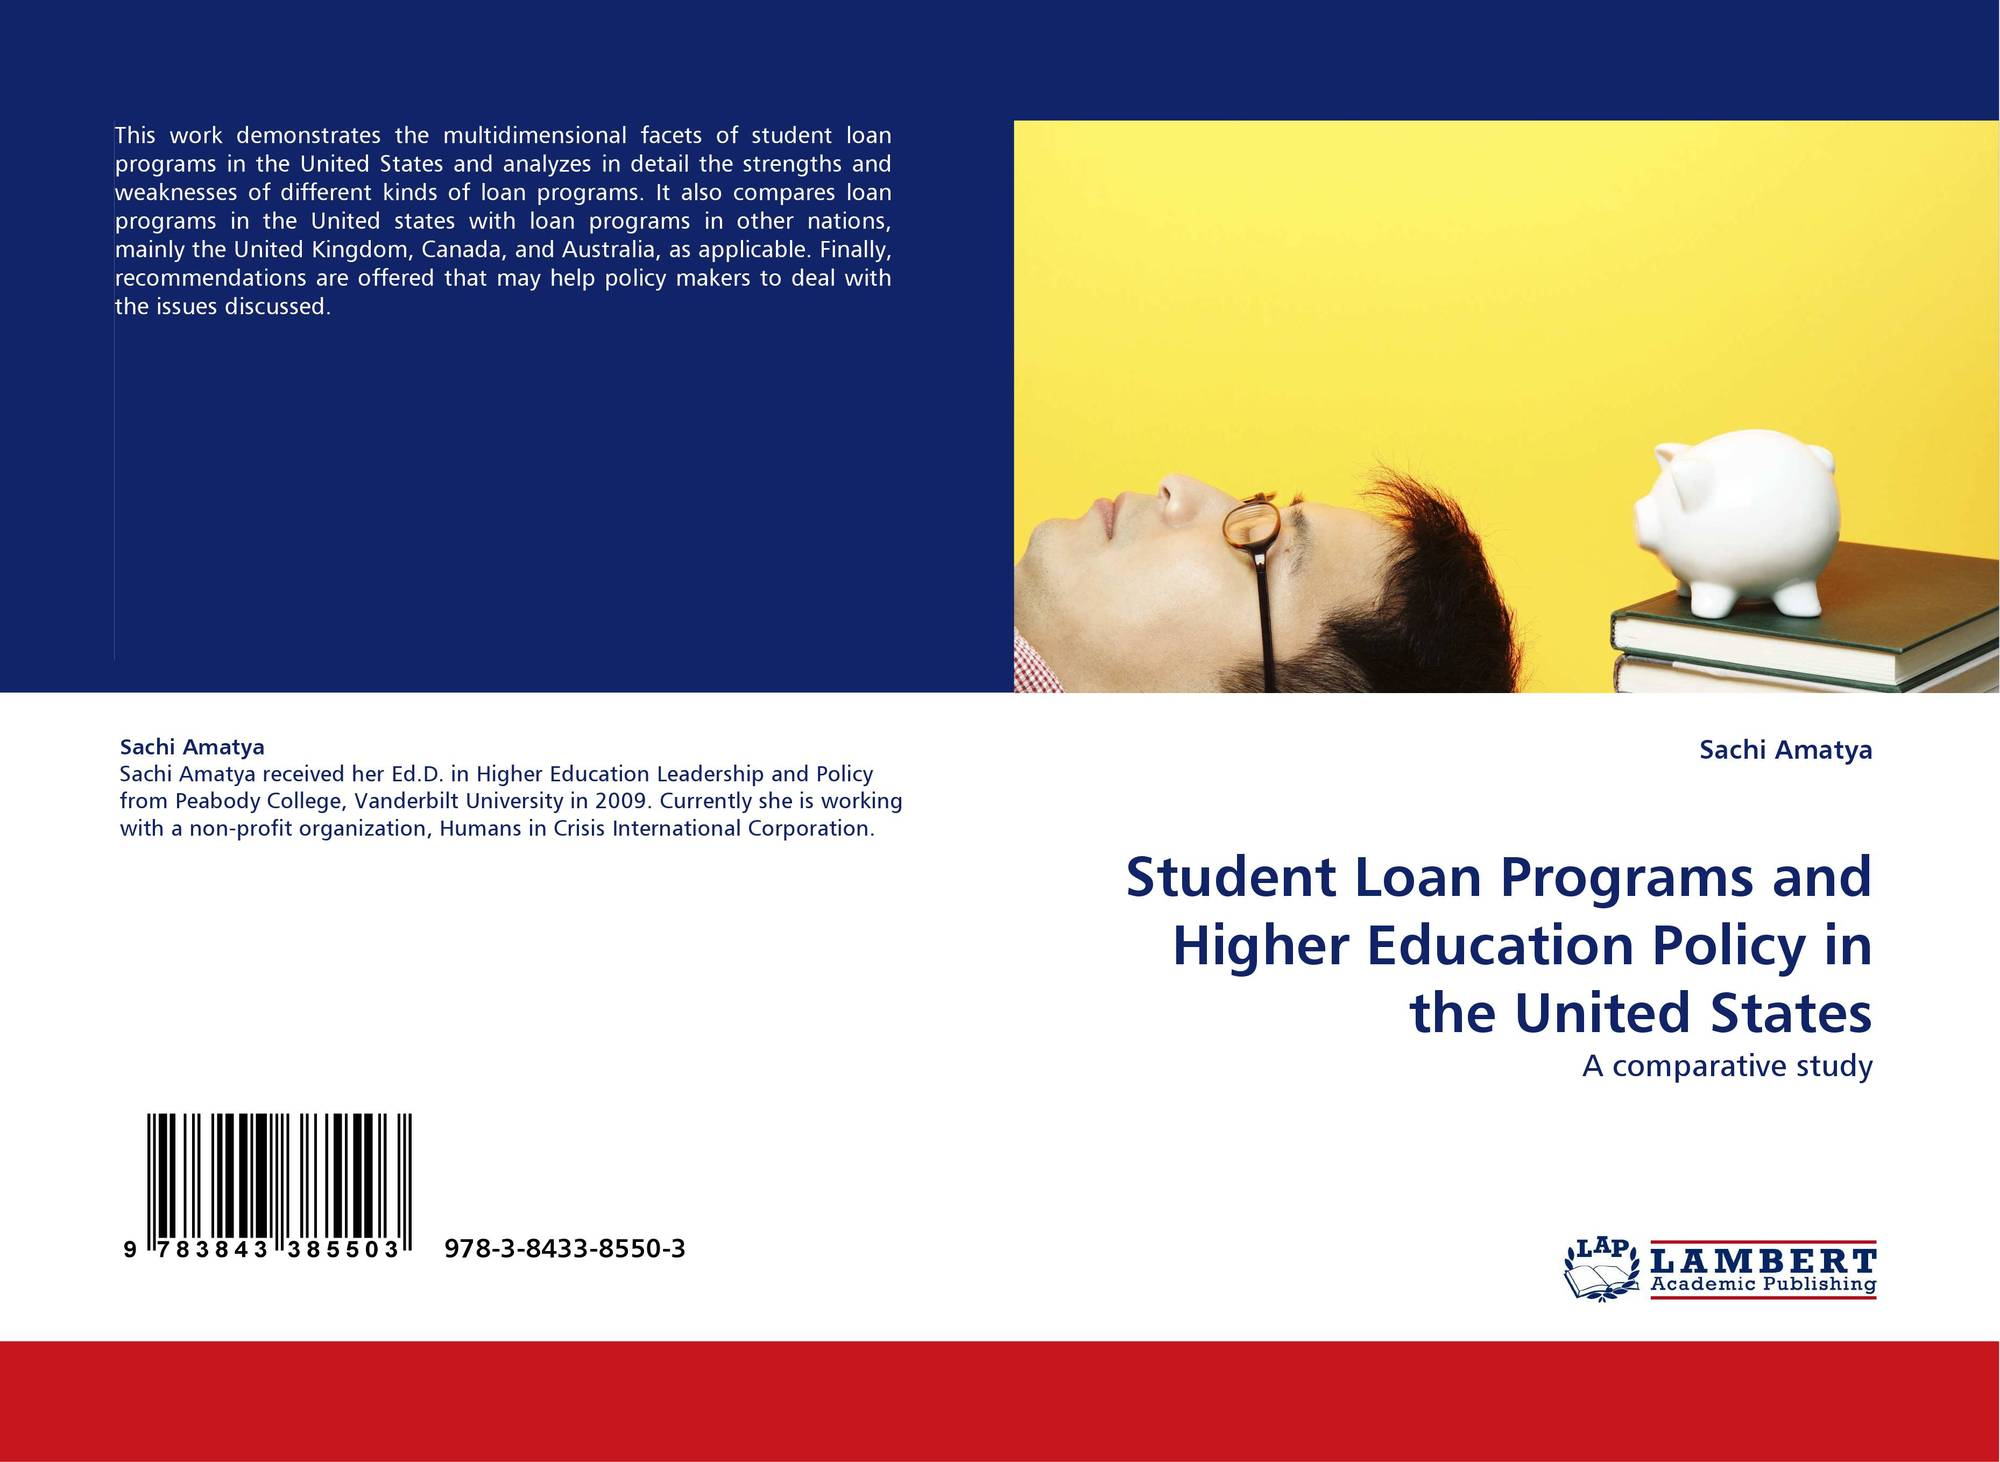 an analysis of college loan and scholarship policies in the united states Dayco scholarship program - free online college scholarship search more than 2,300 sources of college funding, totaling nearly $3 billion in available aid scholarships, internships, grants, and loans that match your education level, talents, and background complete the brief questionnaire and scholarship search will find potential opportunities from our database.